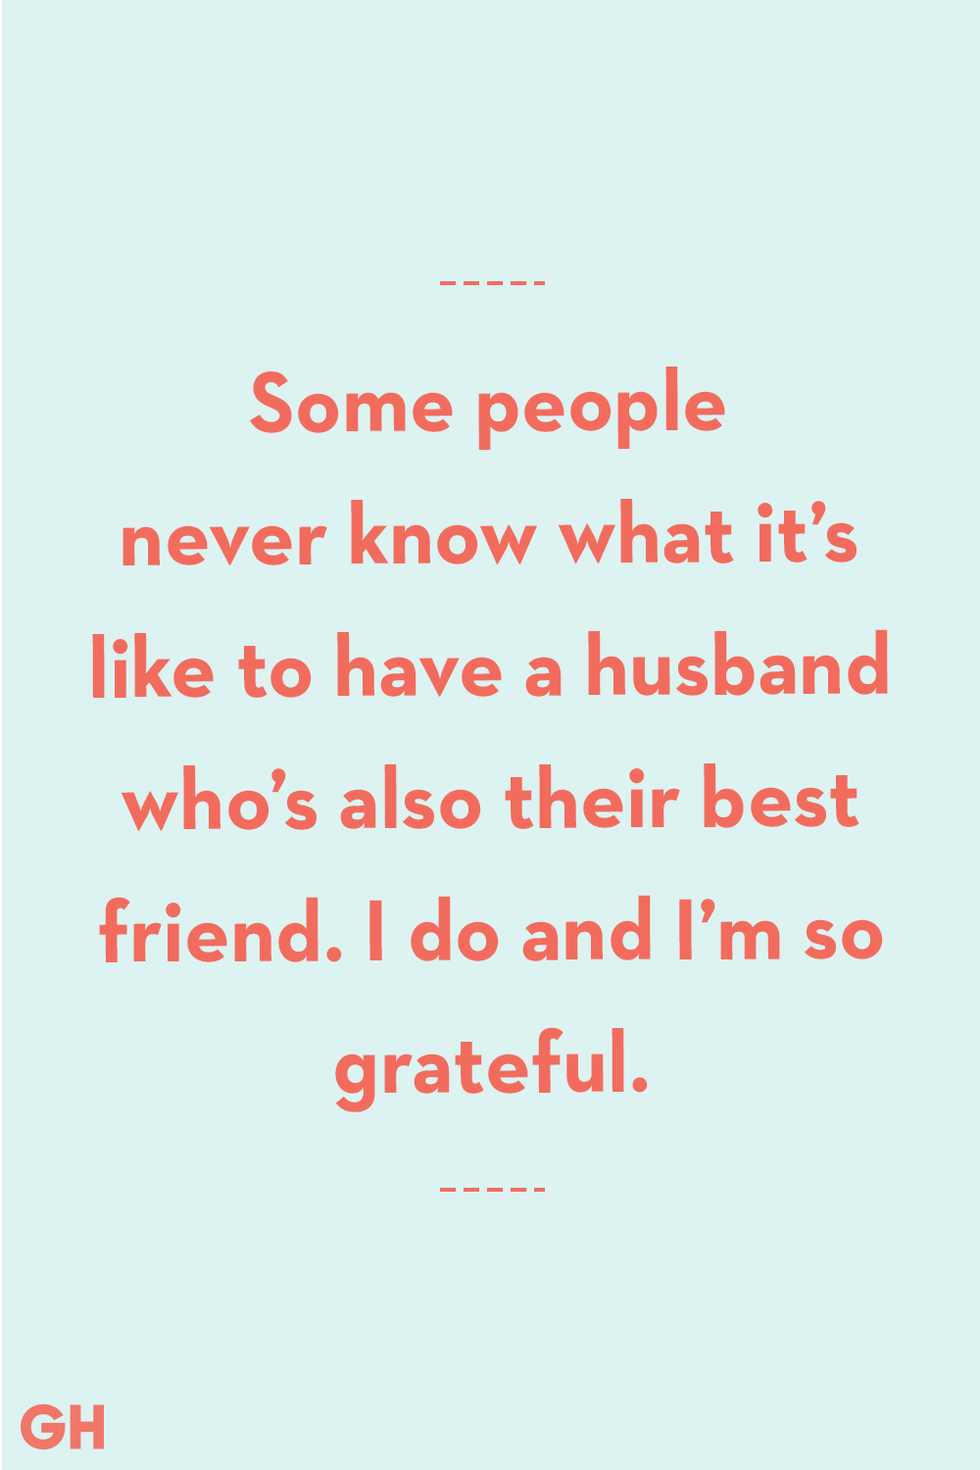 These Quotes Capture How The Love You Feel for Your Husband This Father's Day